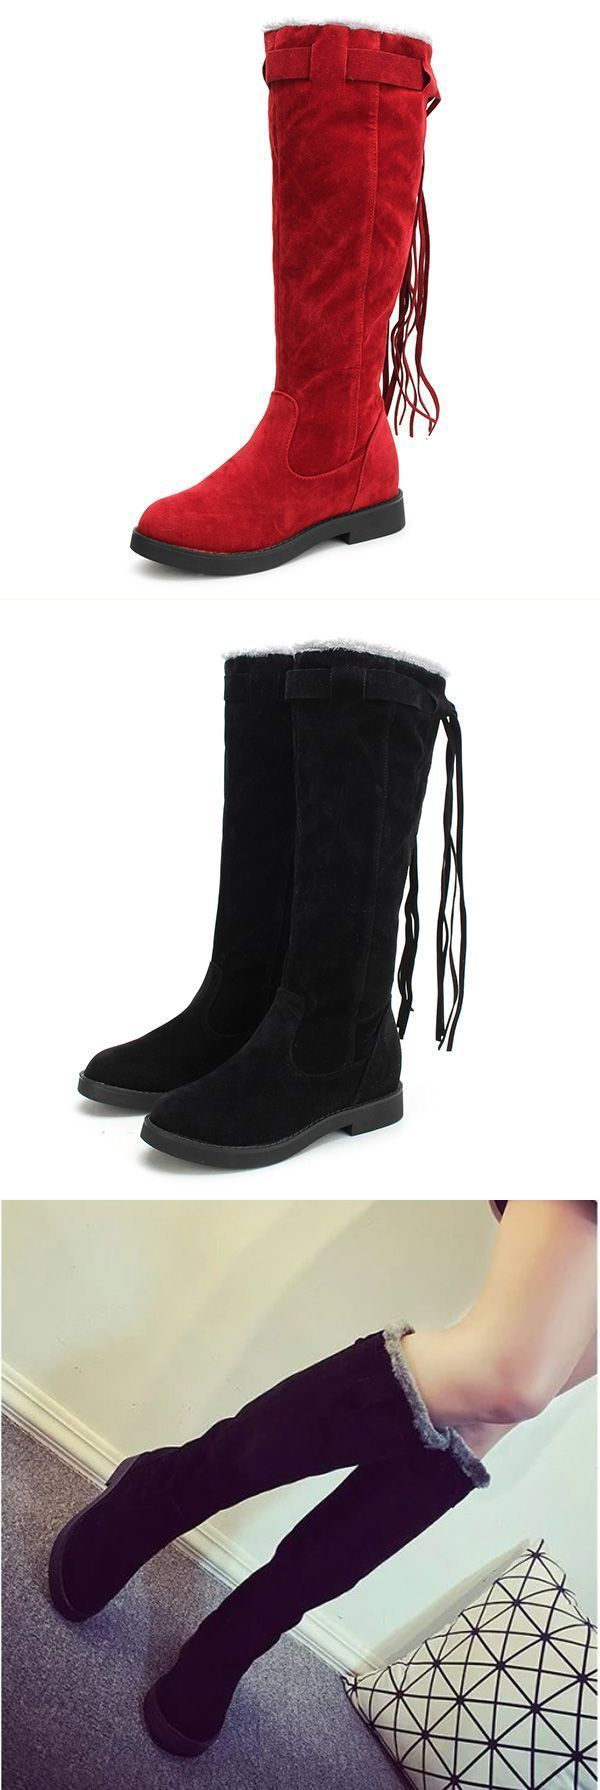 Winter Las Warm Over The Knee Boots Tels Round Toe Snow Brands Best Fashion Woman